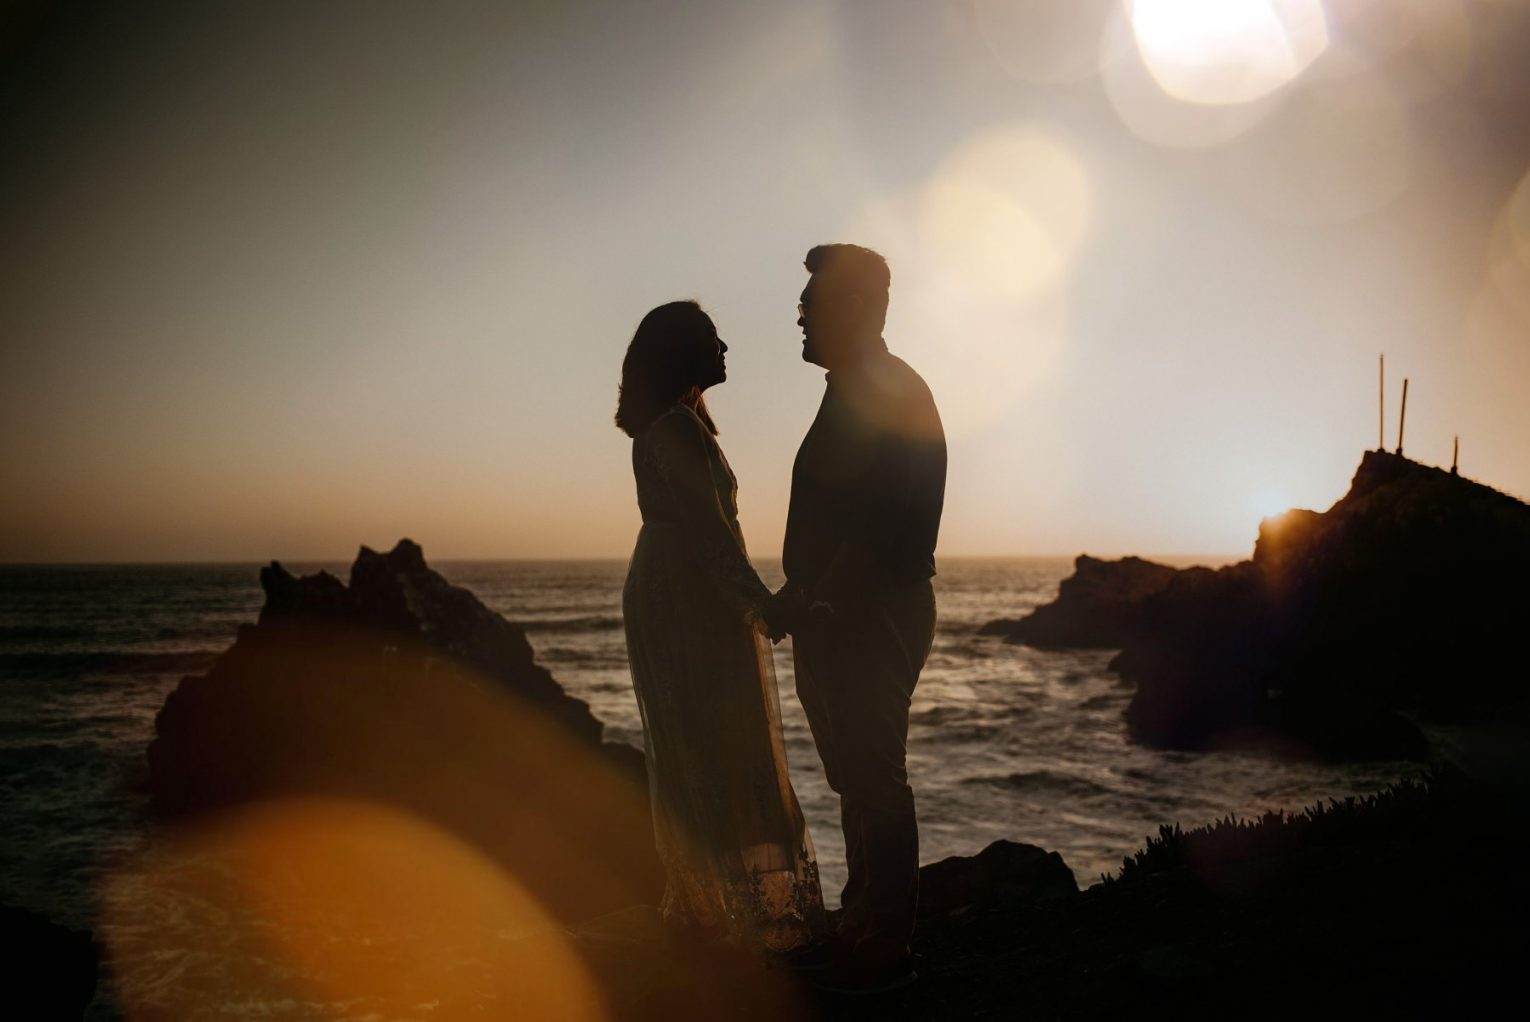 Silhouette of couple eloping in San Francisco by ocean at sunset.